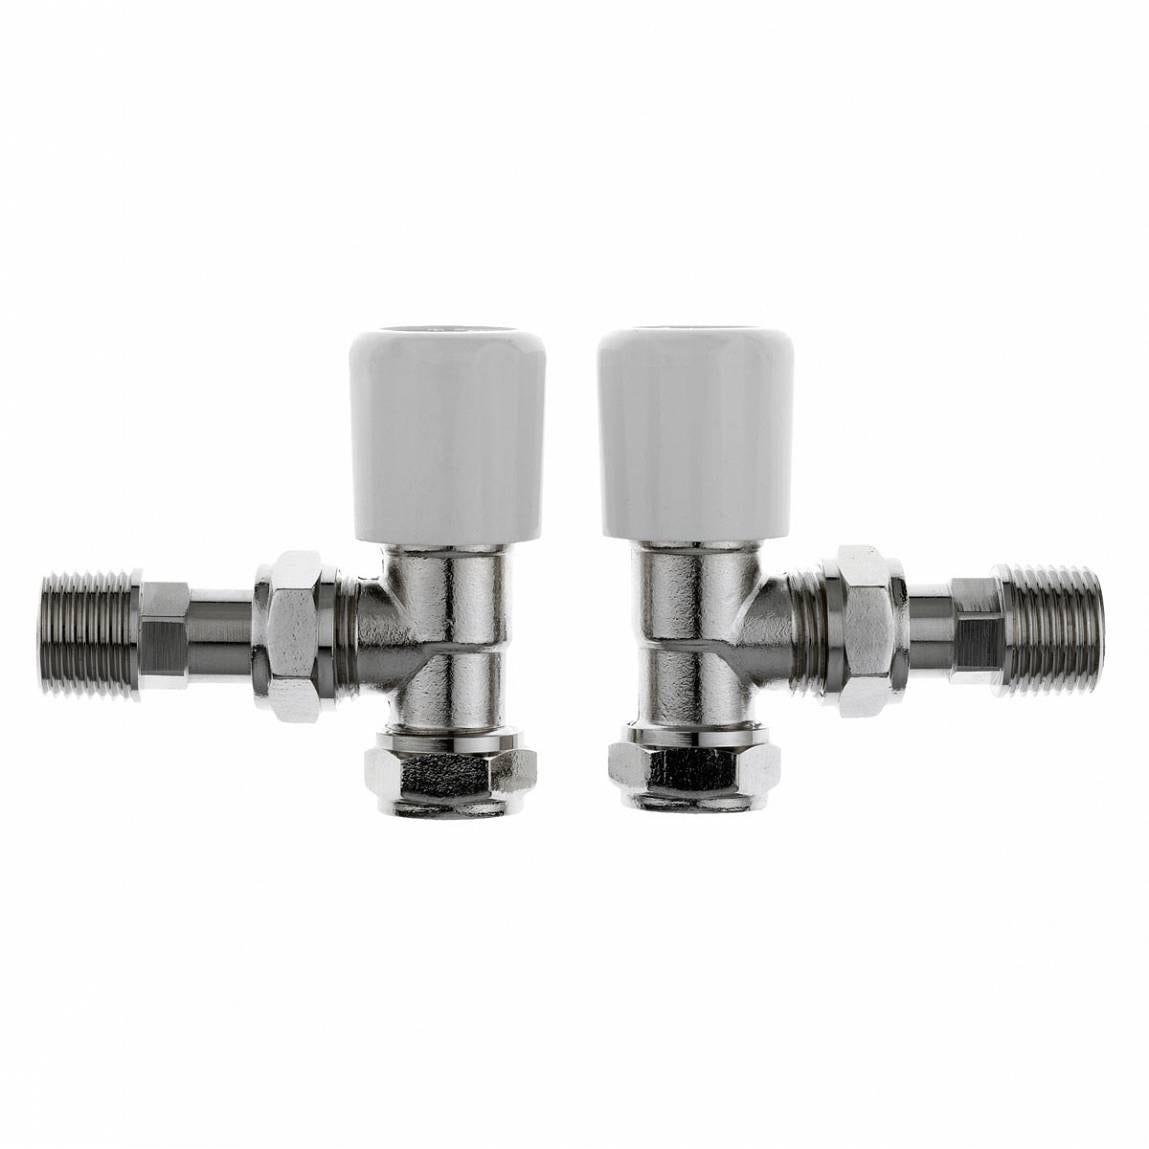 Clarity angled radiator valves - Sold by Victoria Plum